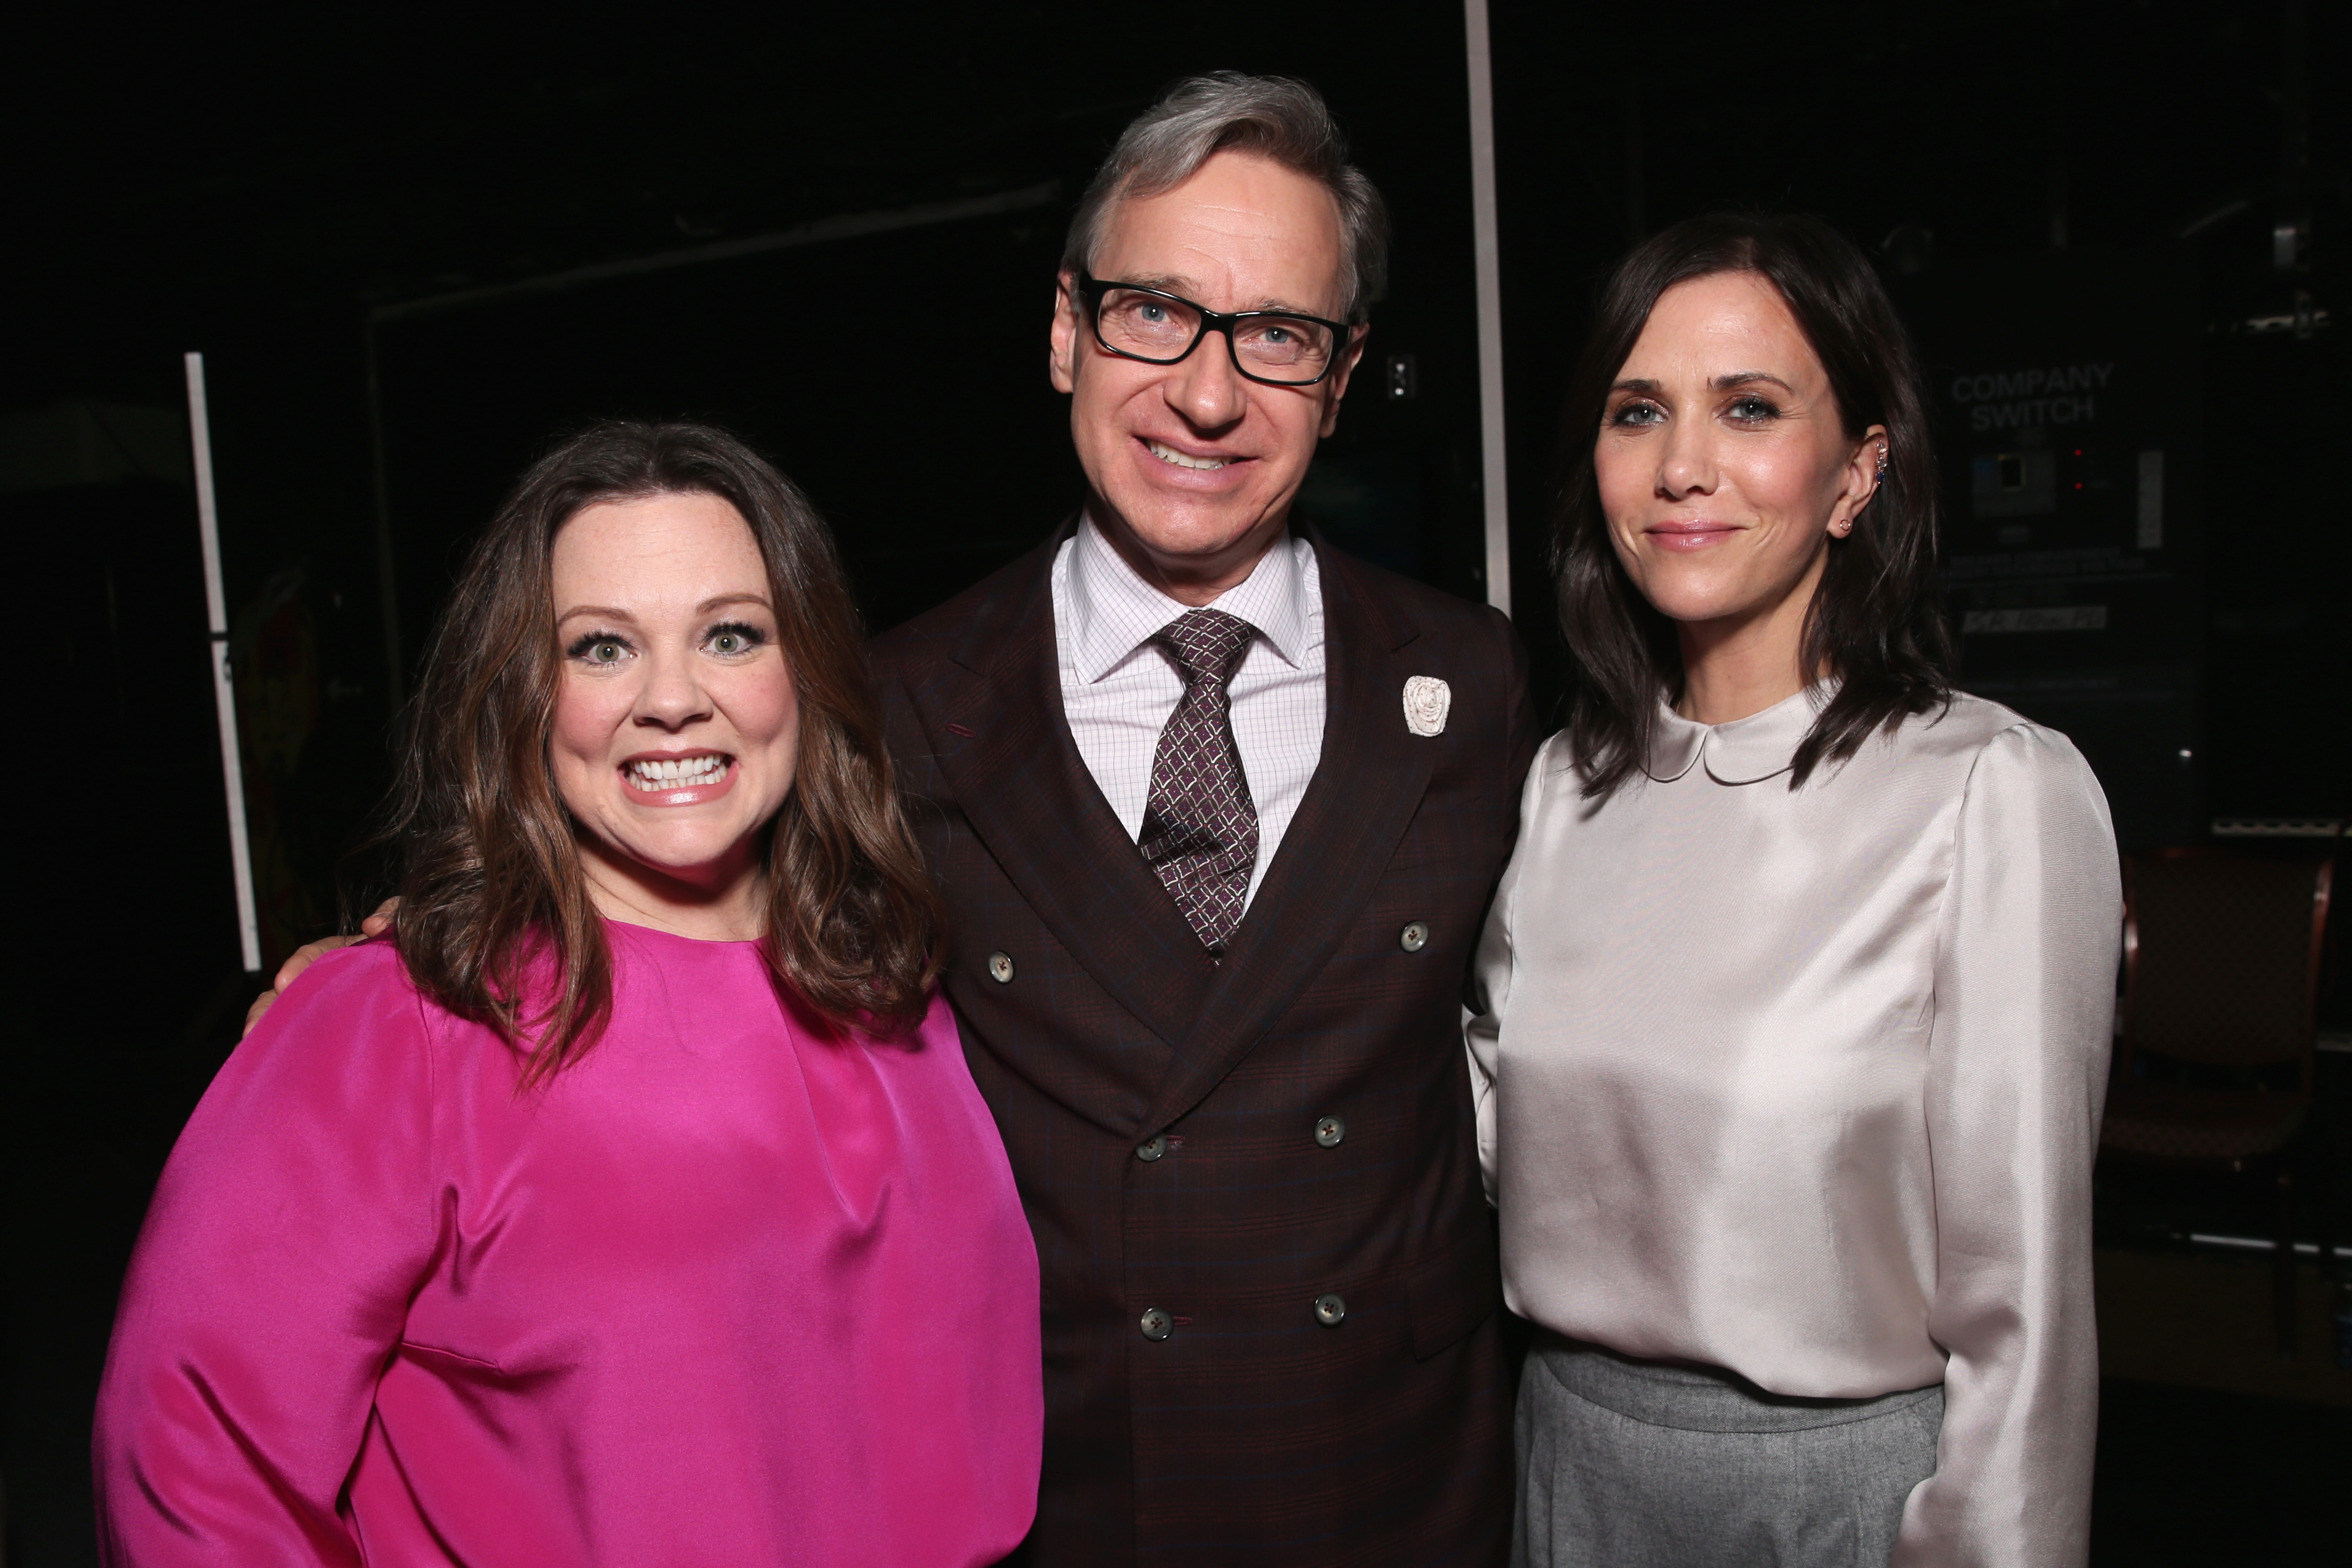 Actress Melissa McCarthy, director Paul Feig and actress Kristen Wiig attend CinemaCon 2016 An Evening with Sony Pictures Entertainment: Celebrating the Summer of 2016 and Beyond at The Colosseum at Caesars Palace during CinemaCon, the official convention of the National Association of Theatre Owners, on April 12, 2016 in Las Vegas, Nevada.